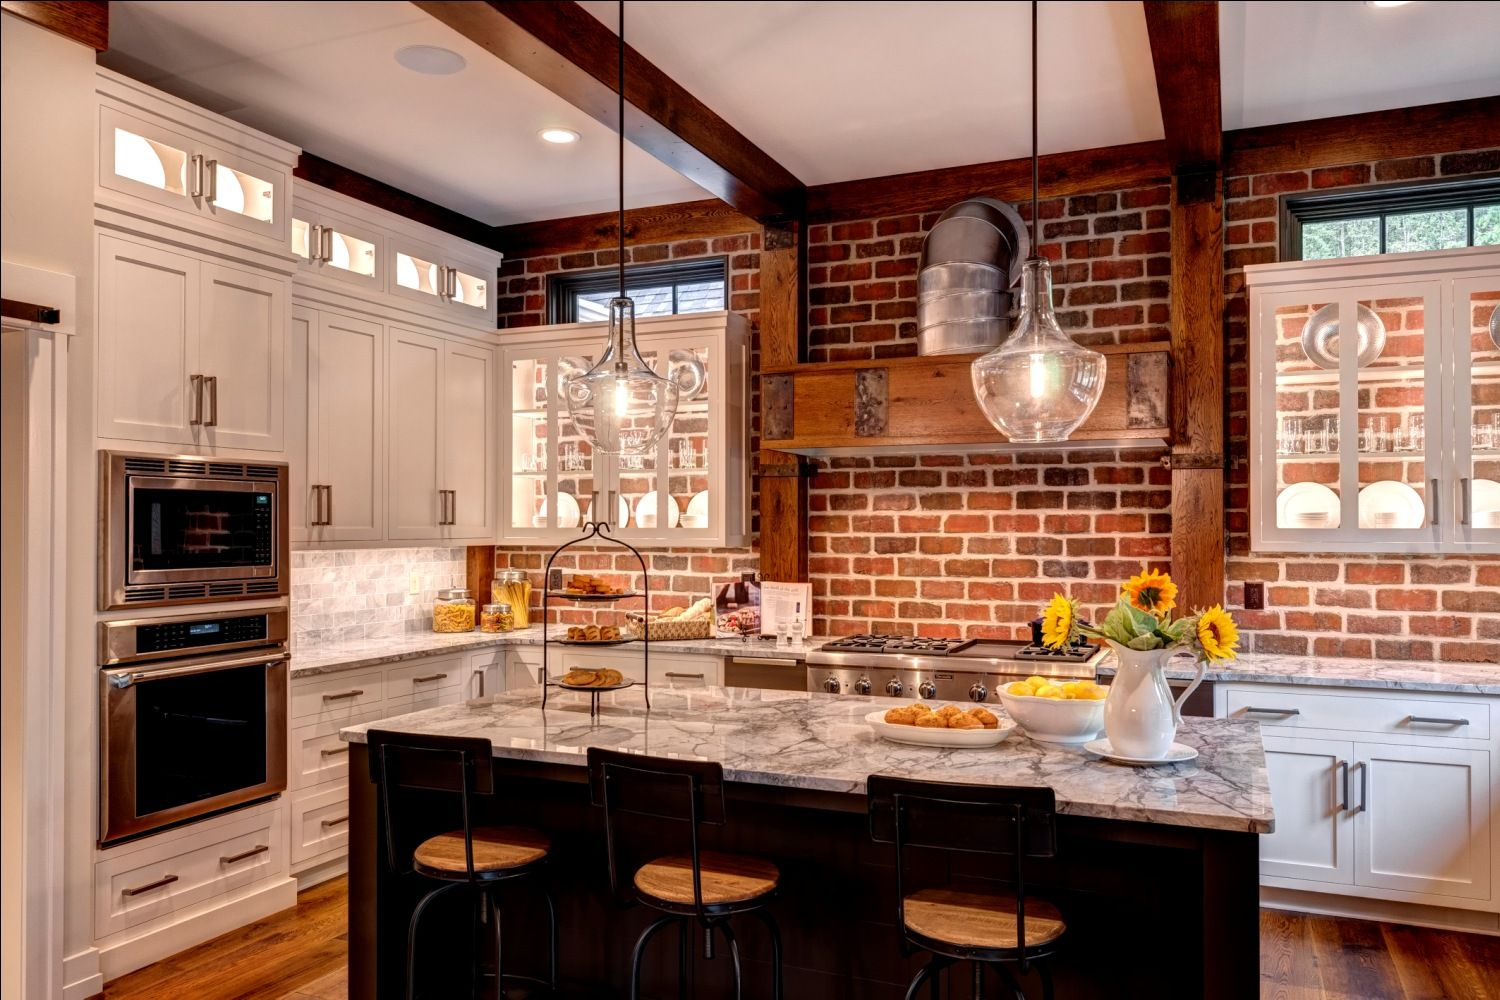 Kitchen Brick Wall Brick Wall In Kitchen With White Cabinets Glass Cabinet